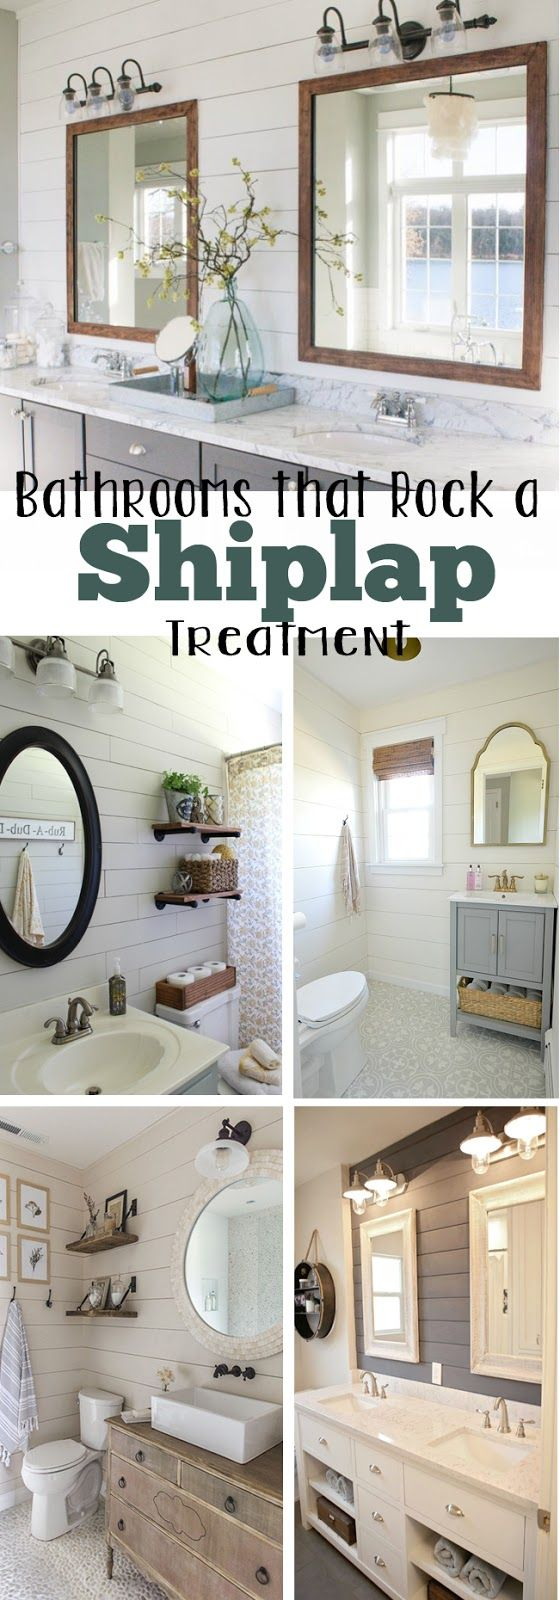 Lovely 10 Bathrooms That Rock A Shiplap Treatment